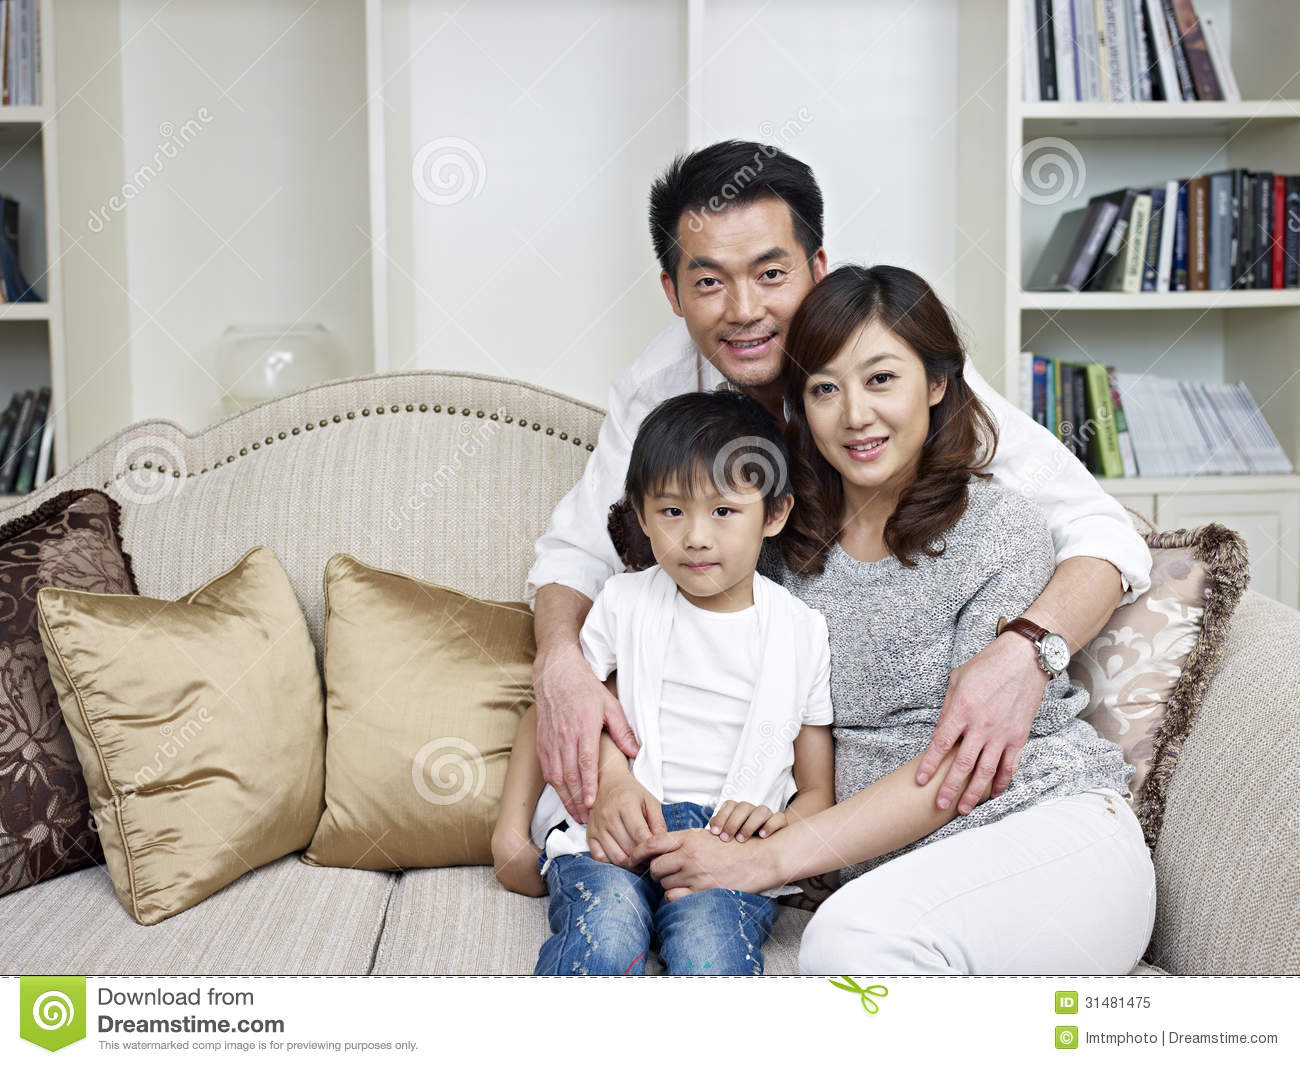 Consider, that asian loving family possible tell